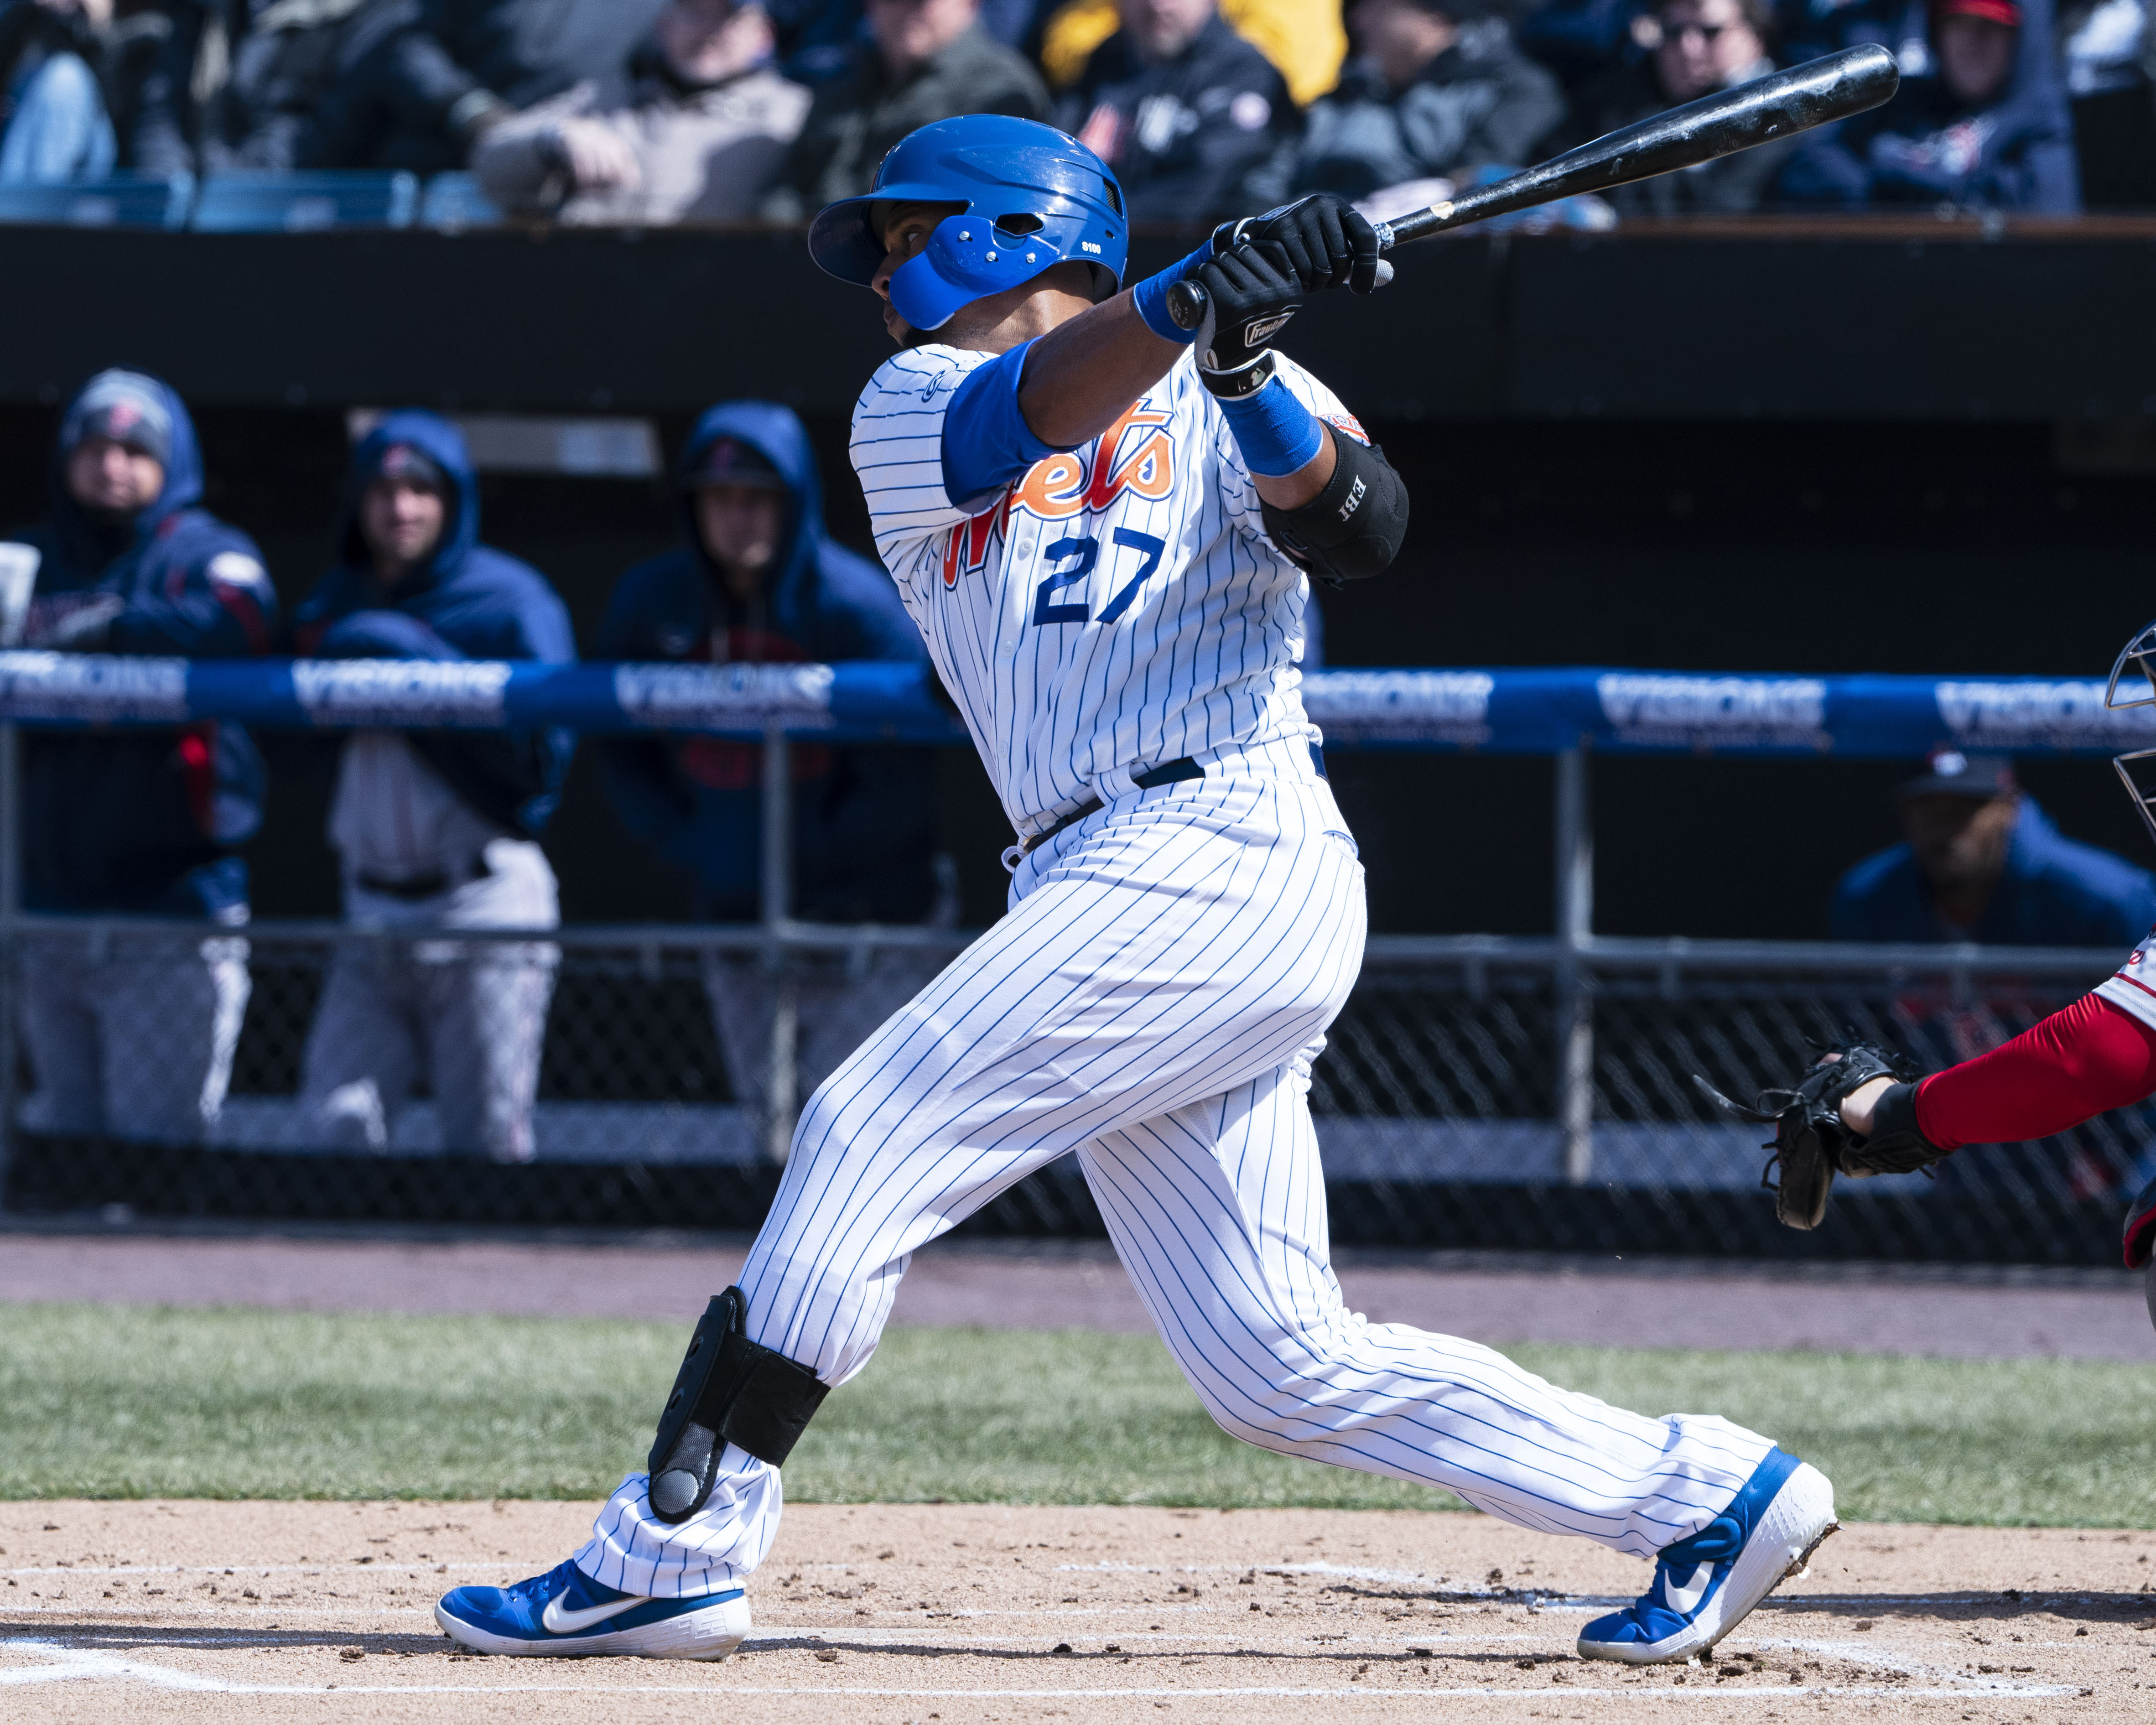 Carlos Gomez is on his way to big league roster